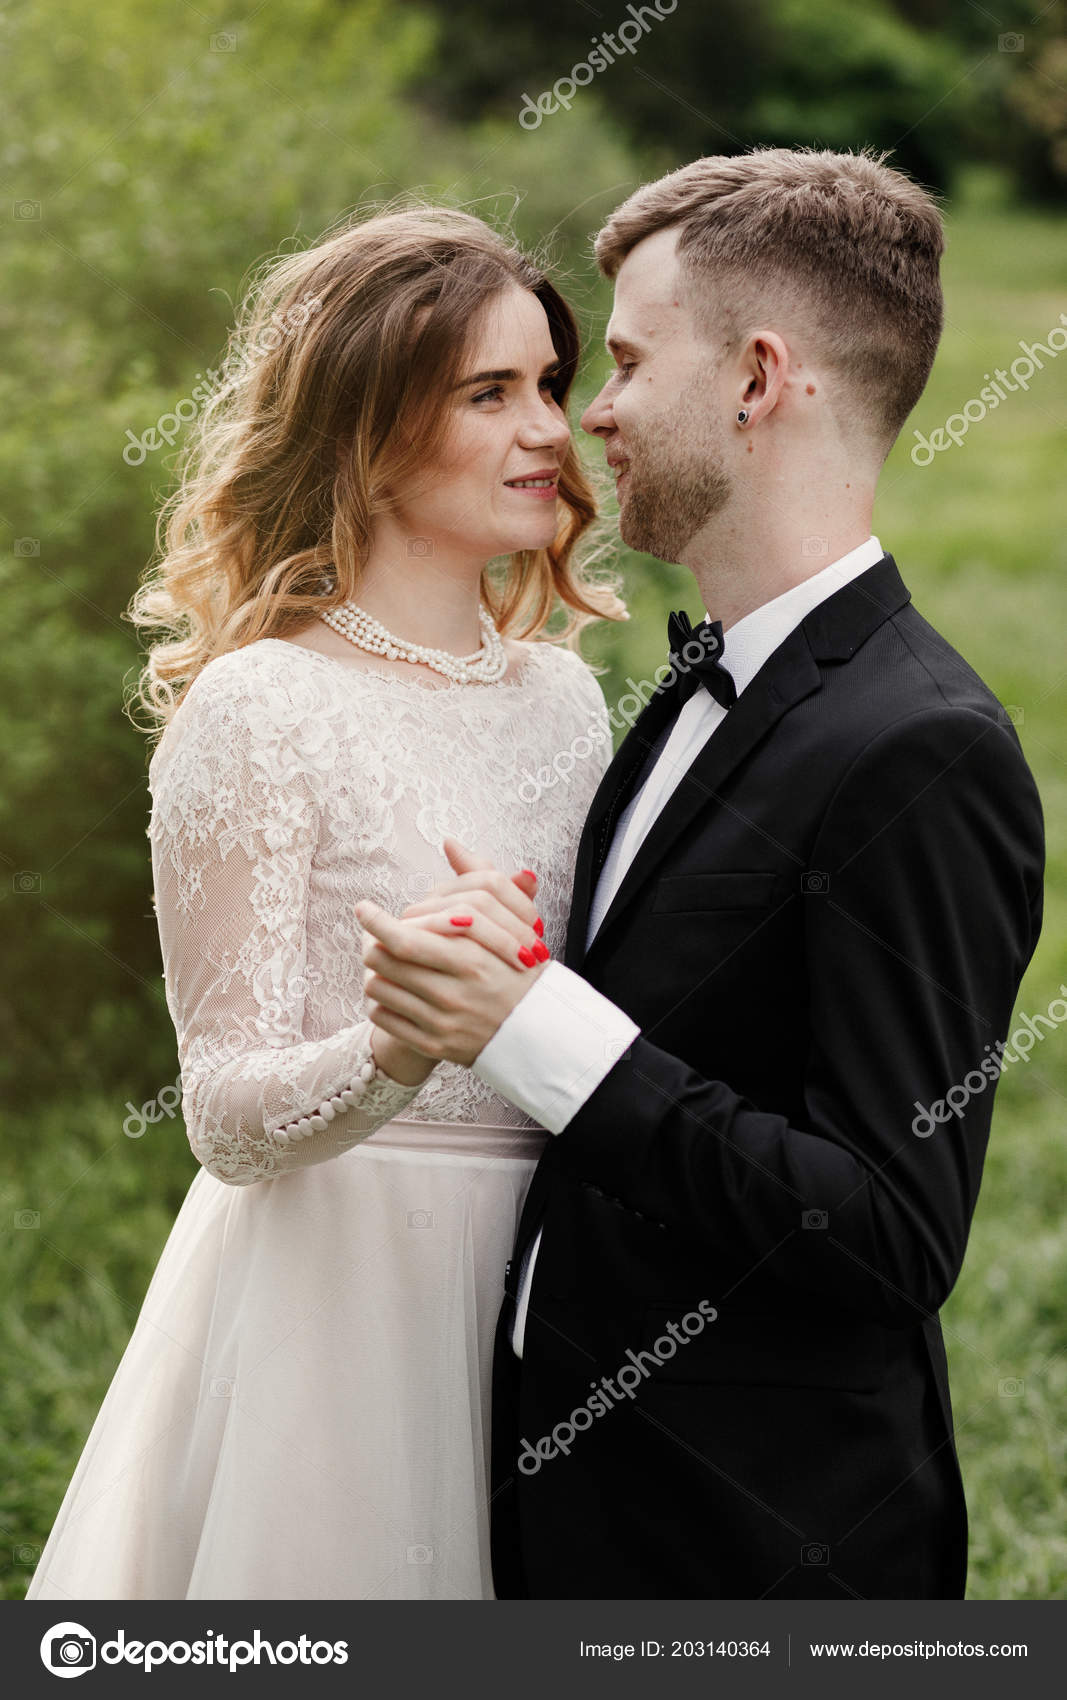 Happy Wedding Couple Stylish Bride Bearded Groom Posing Wedding Day